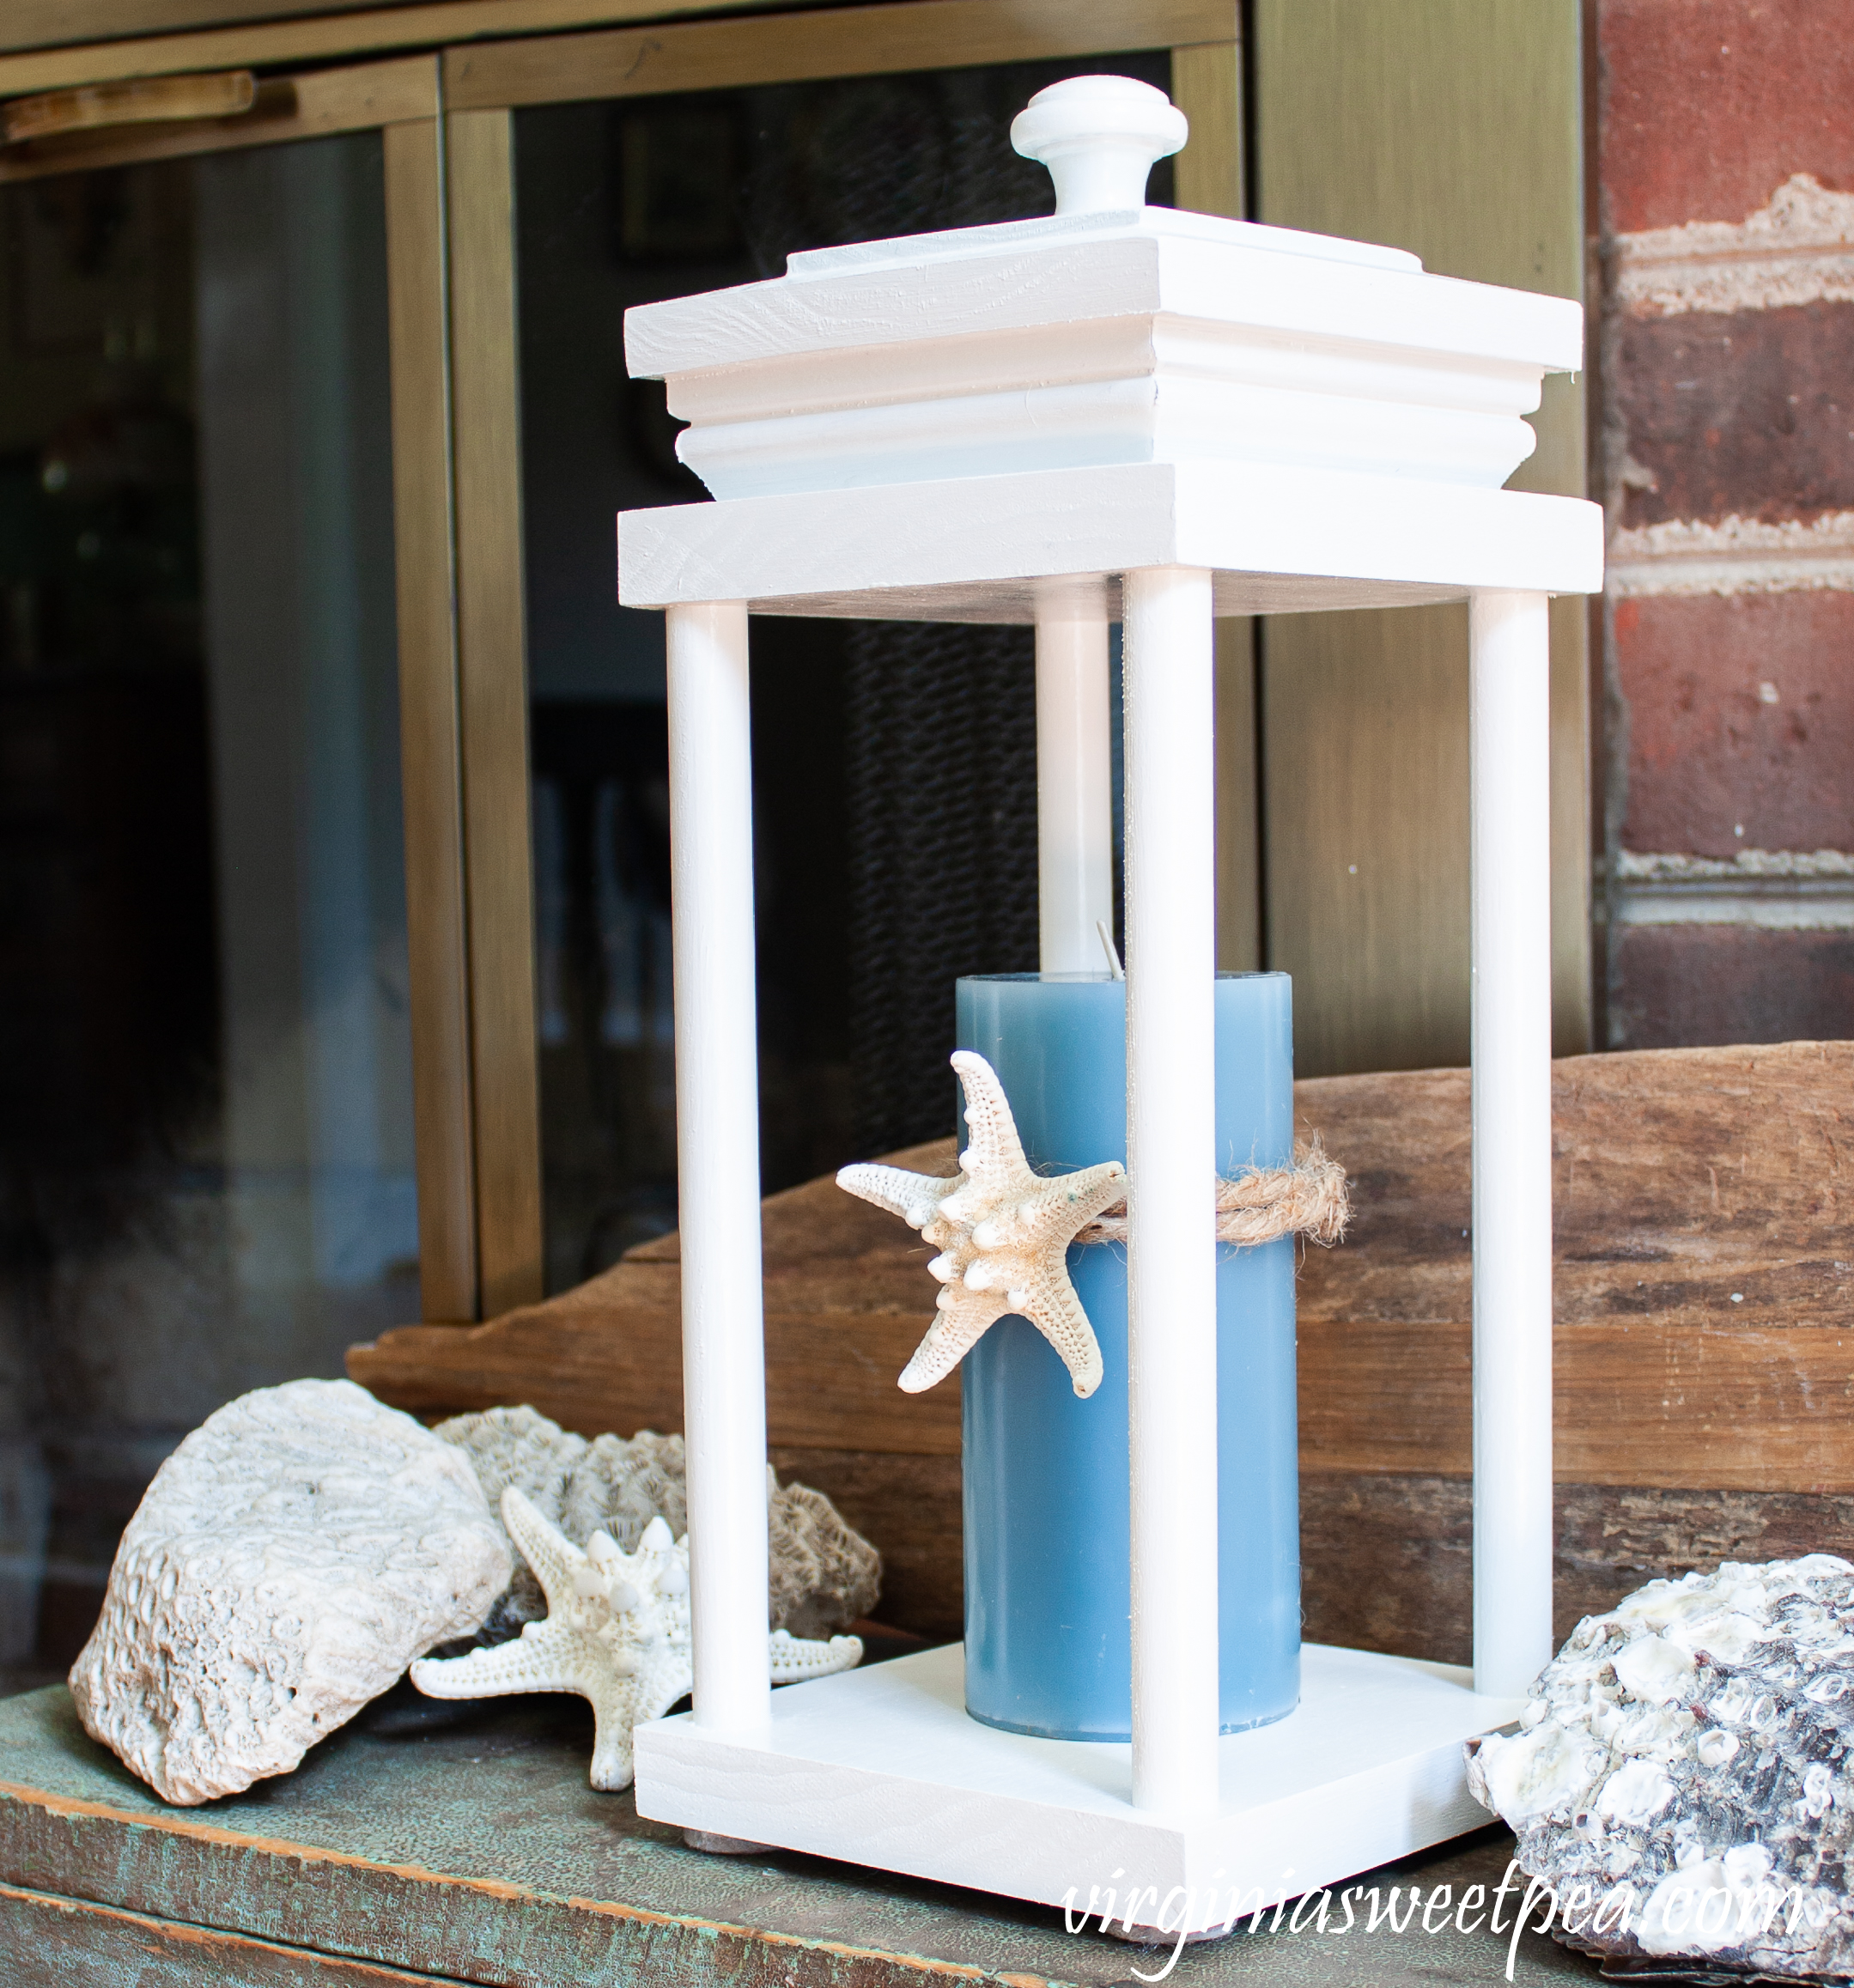 Use a Lantern for summer decorating with a coastal vibe.